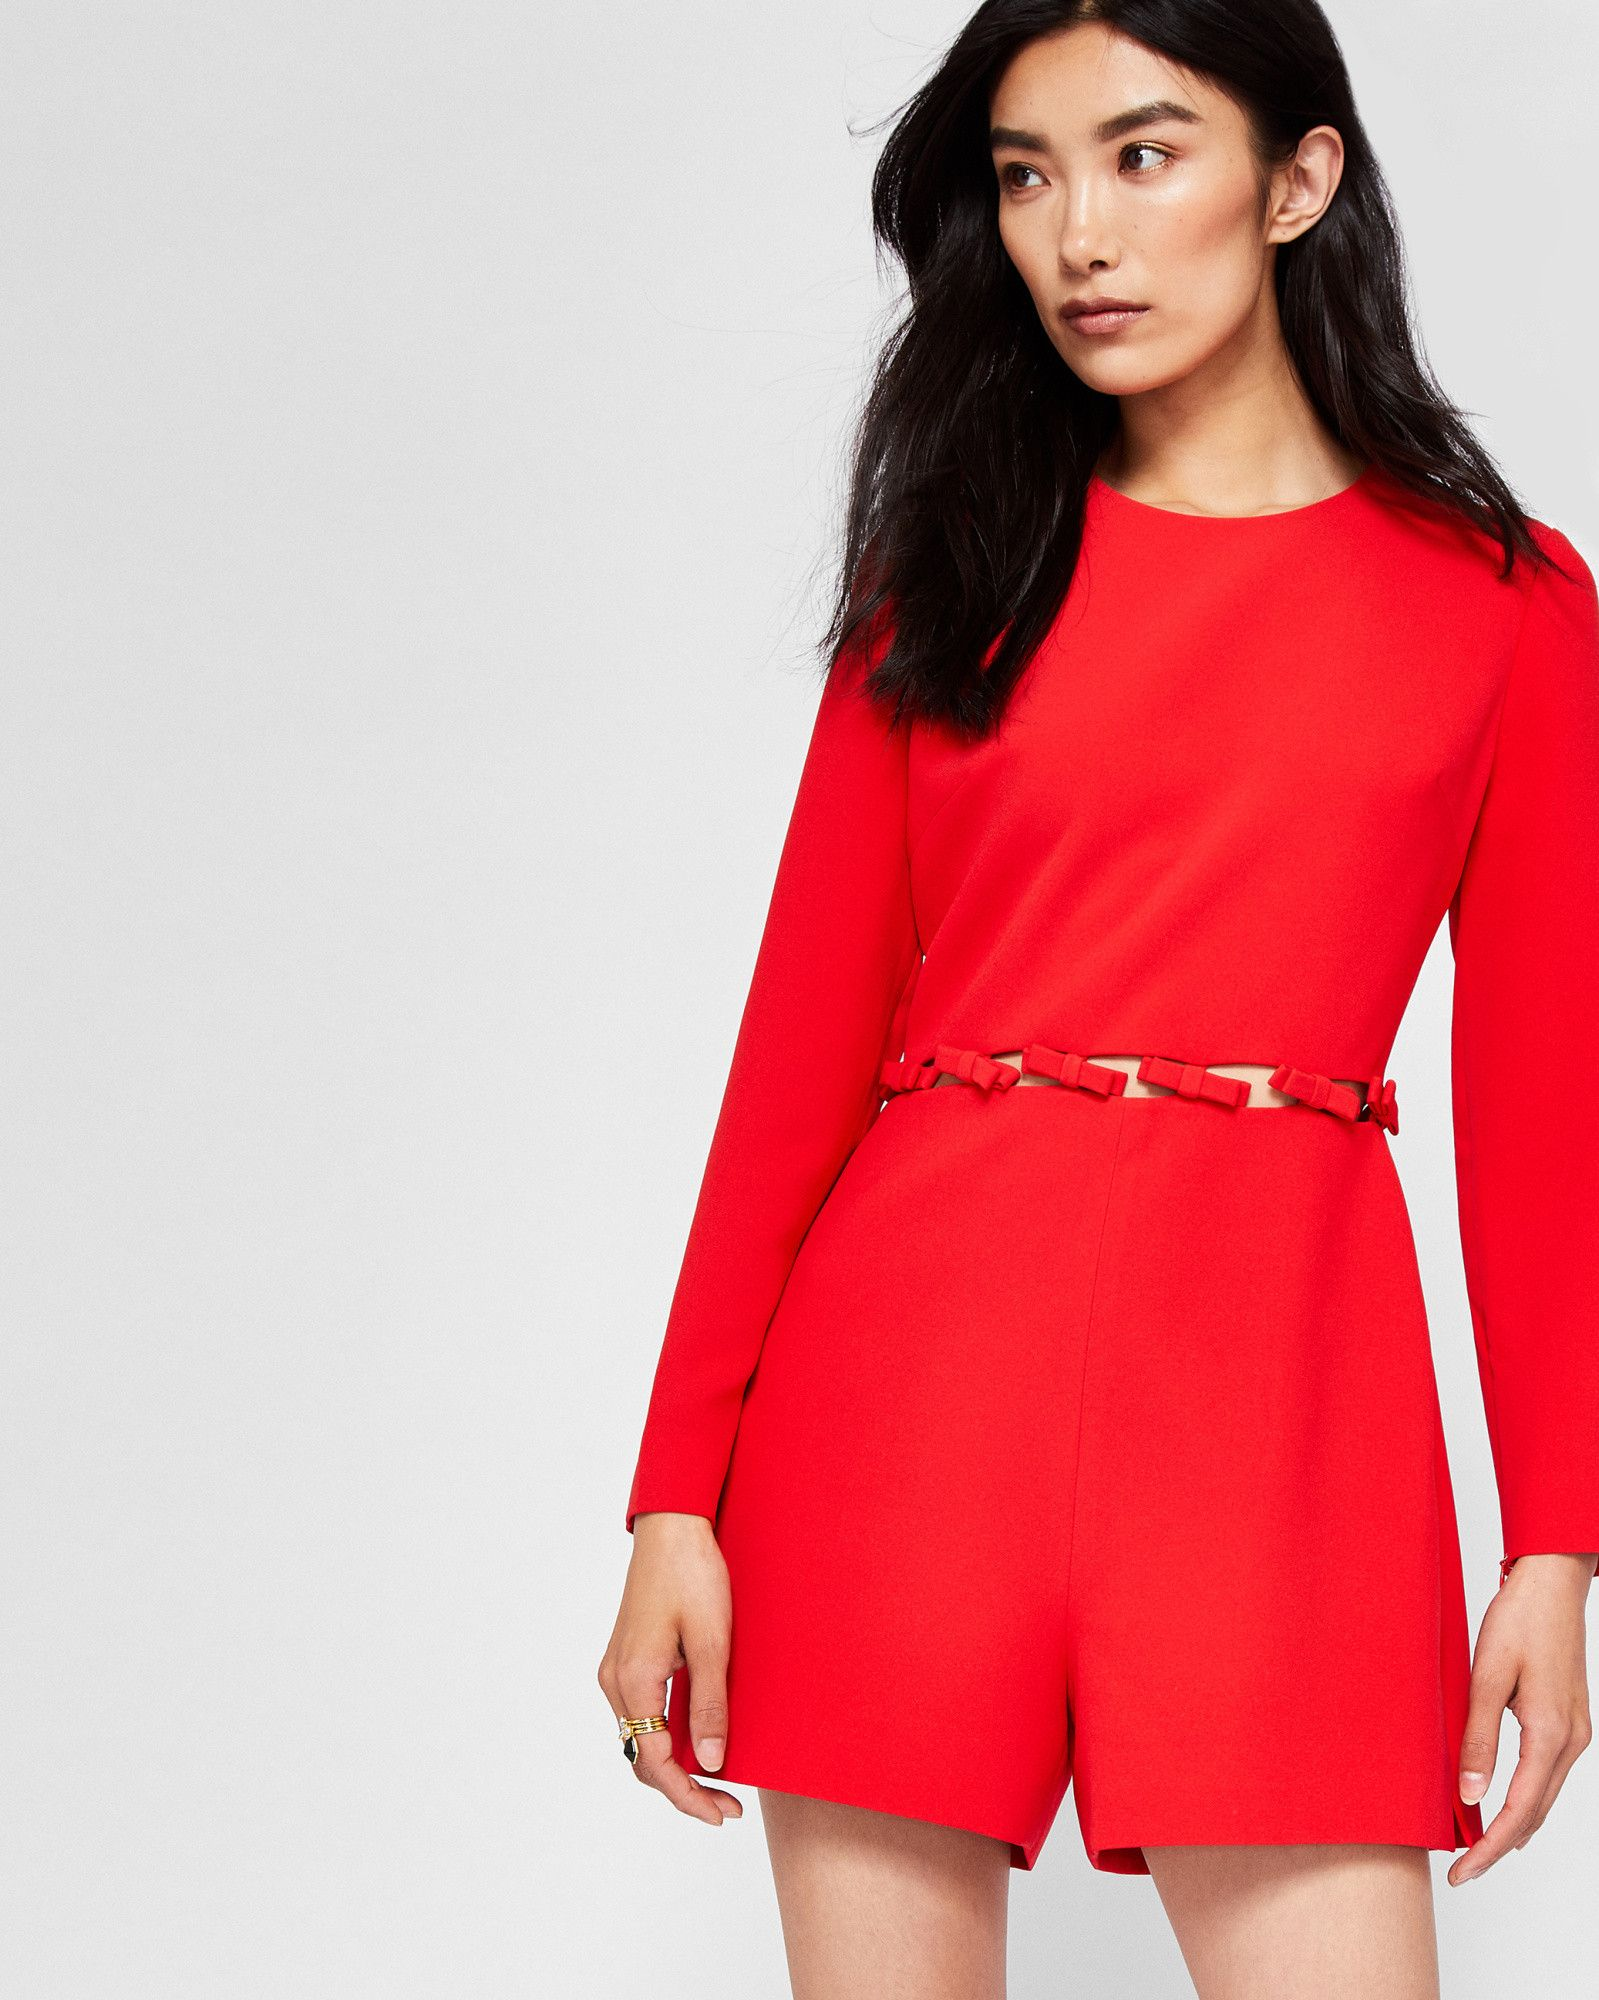 81dab68b06 Ted Baker Cut-out bow playsuit Bright Red